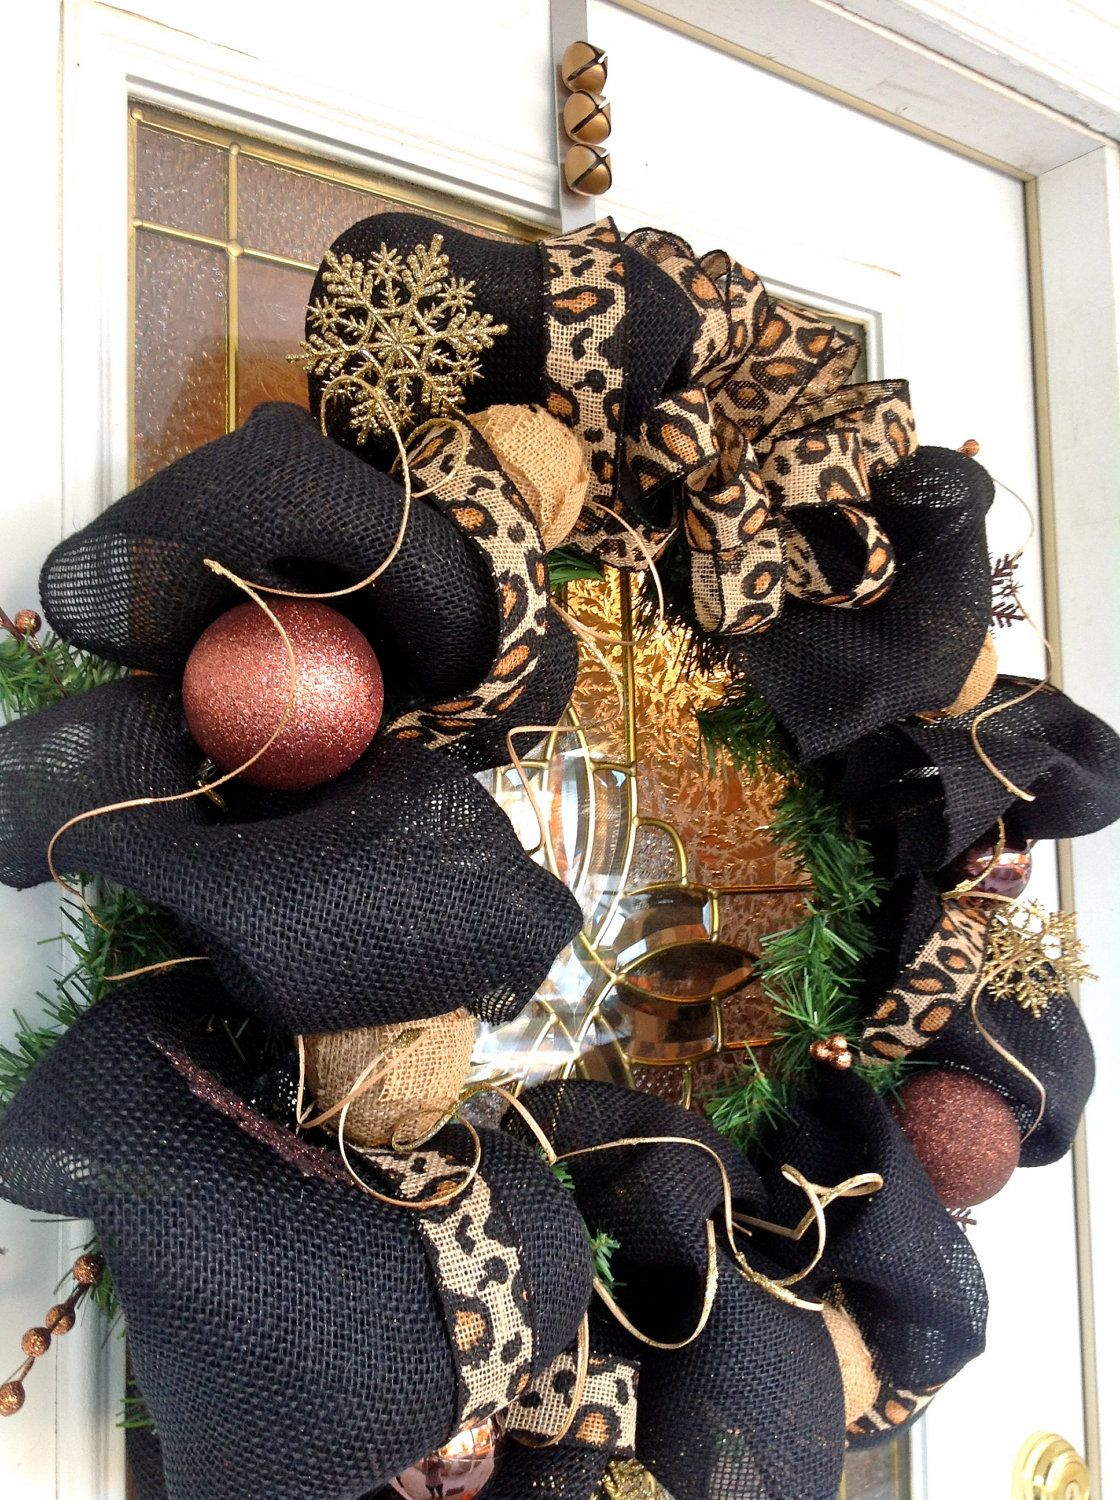 Whimsical Burlap Christmas Wreath, Burlap Wreath, Holiday Wreath, Wreaths  For Door, Animal